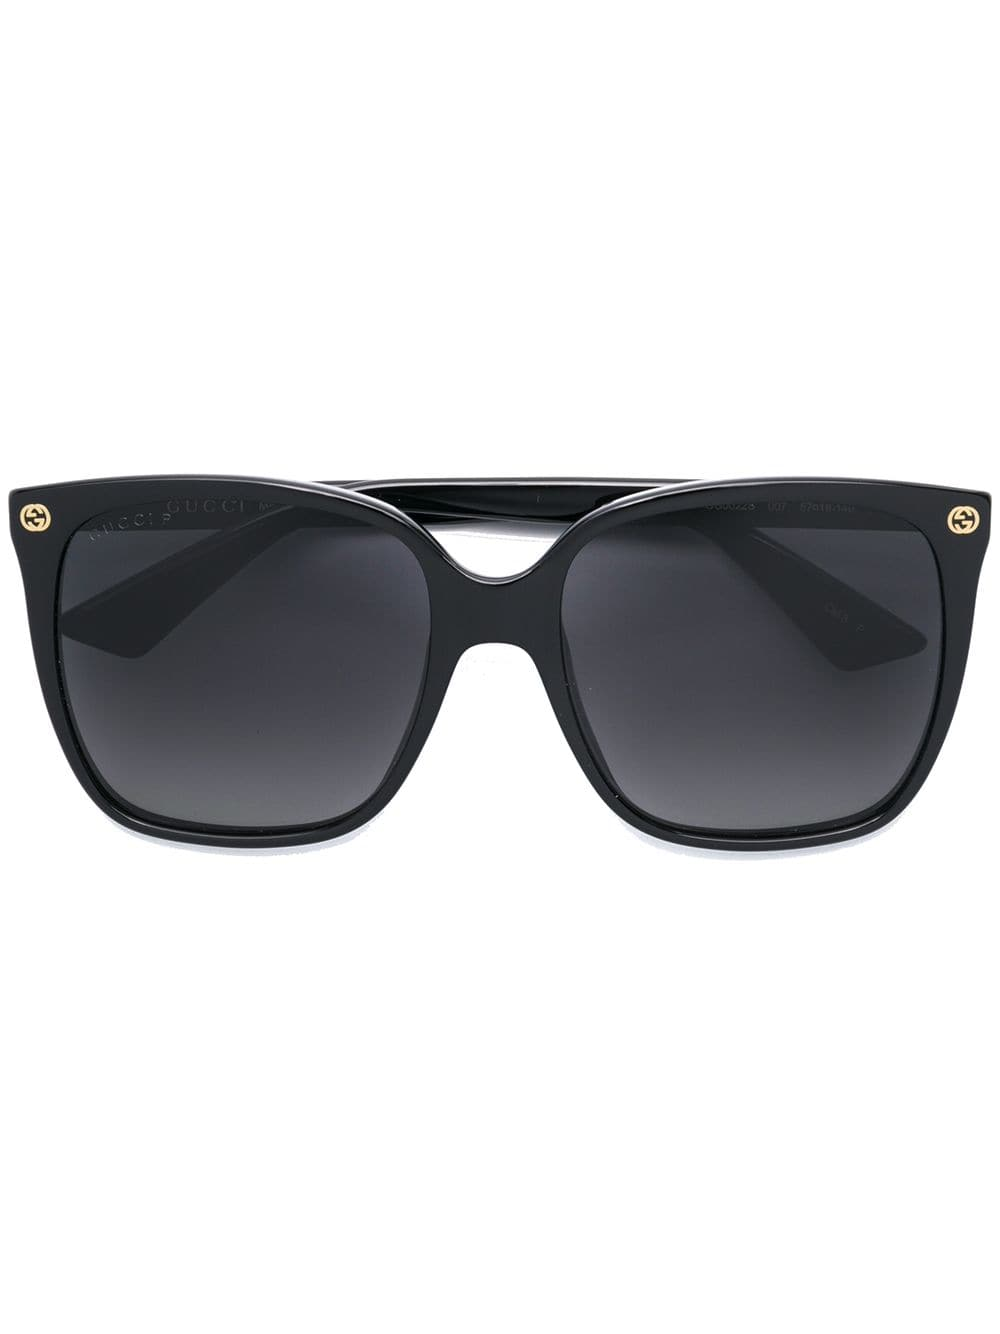 107b3591ee3 gucci-eyewear-oversized-sunglasses-black-farfetch-com-photo.jpg 1548652201